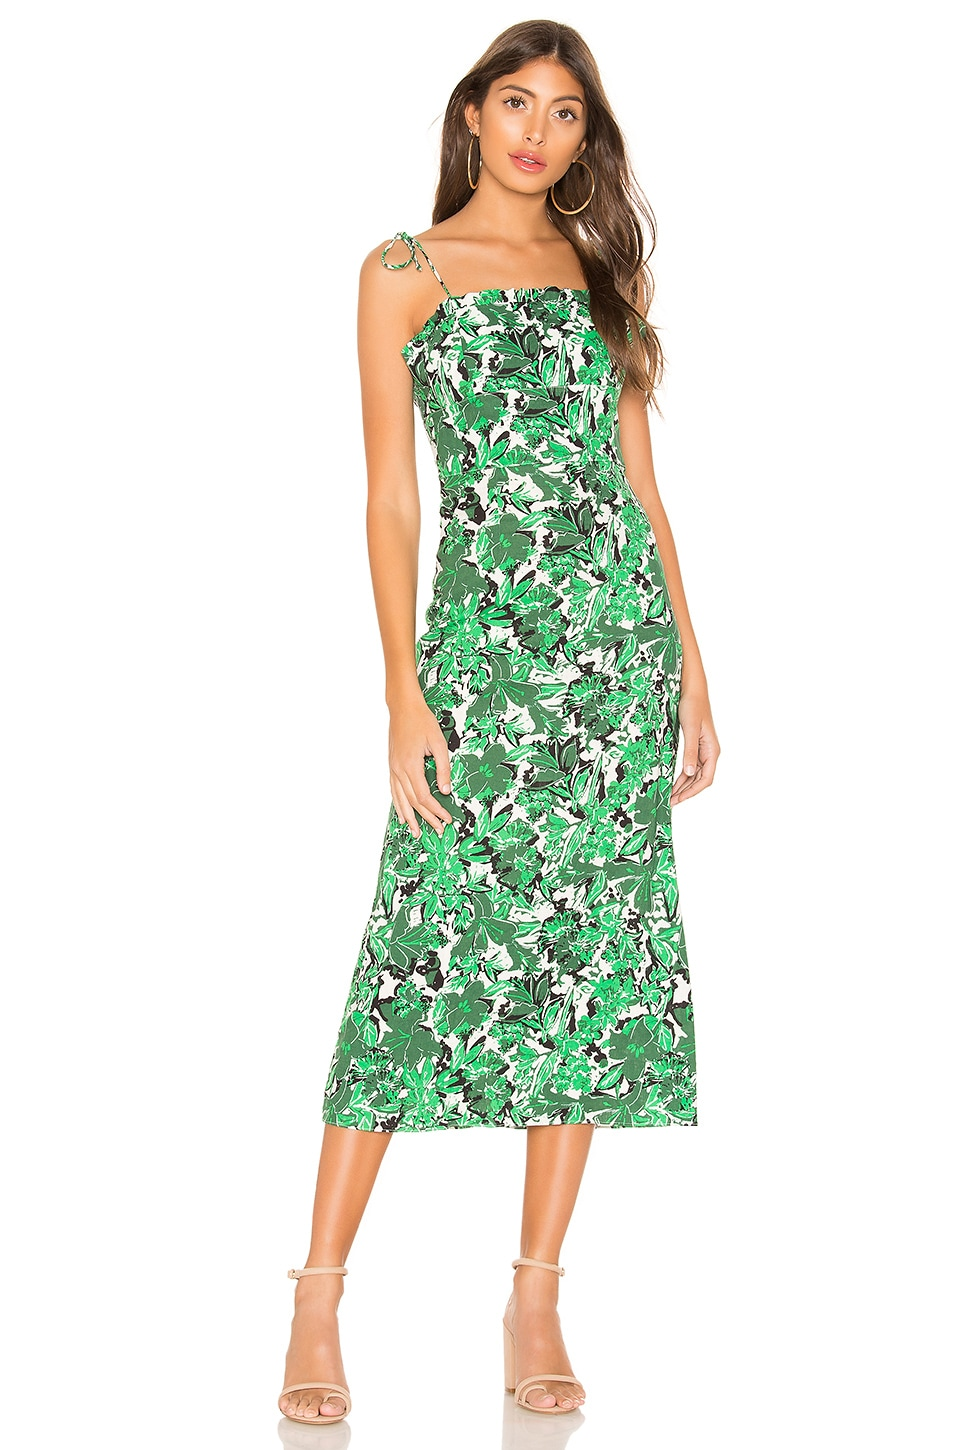 Free People Beach Party Midi Dress in Green Combo